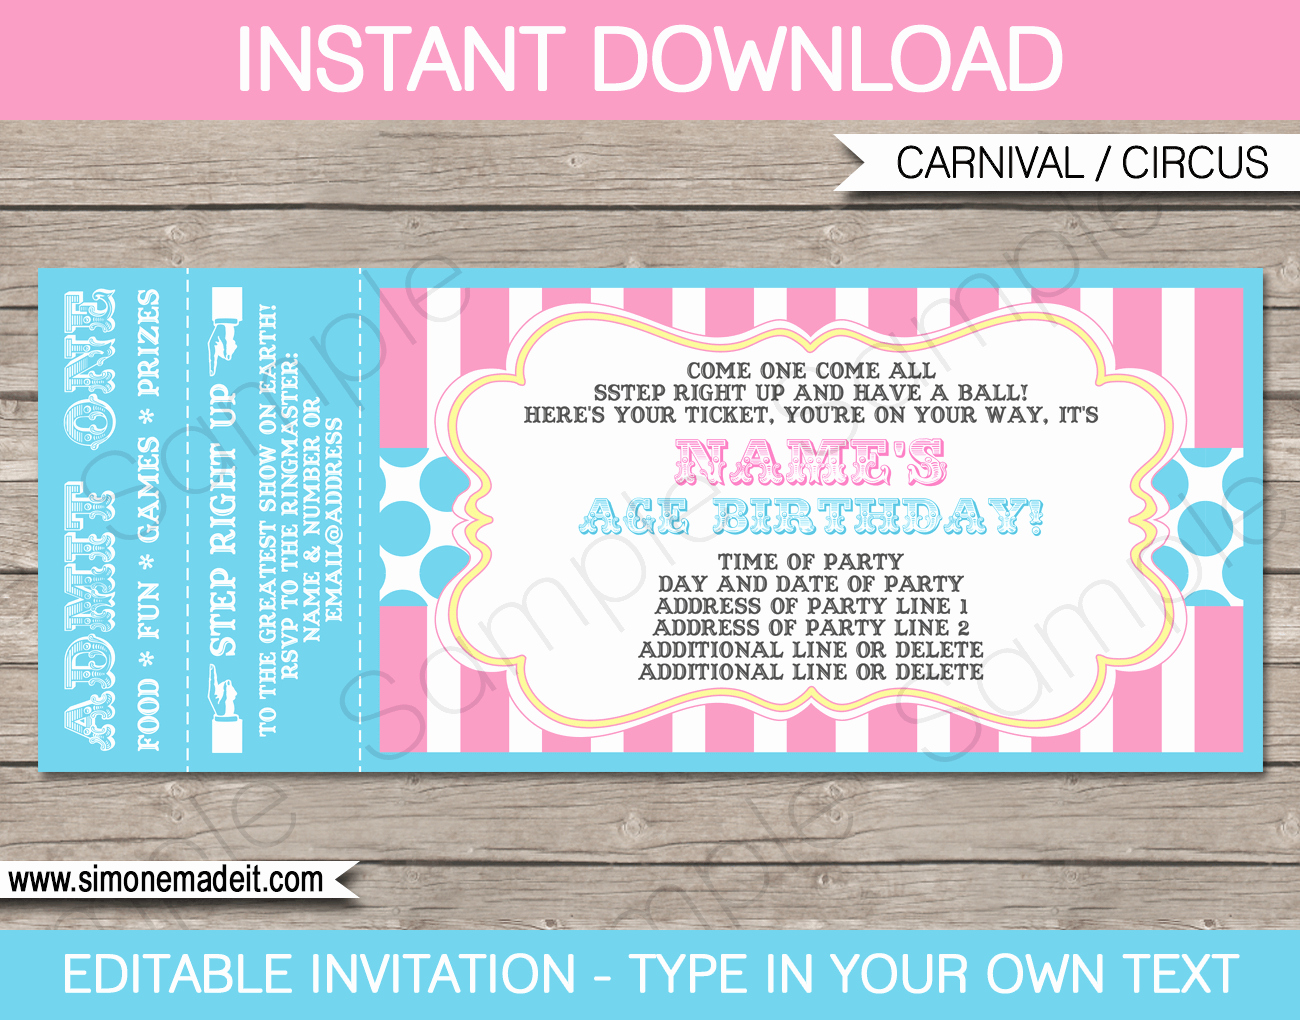 Carnival Ticket Invitation Template Free New Carnival Party Ticket Invitations Template